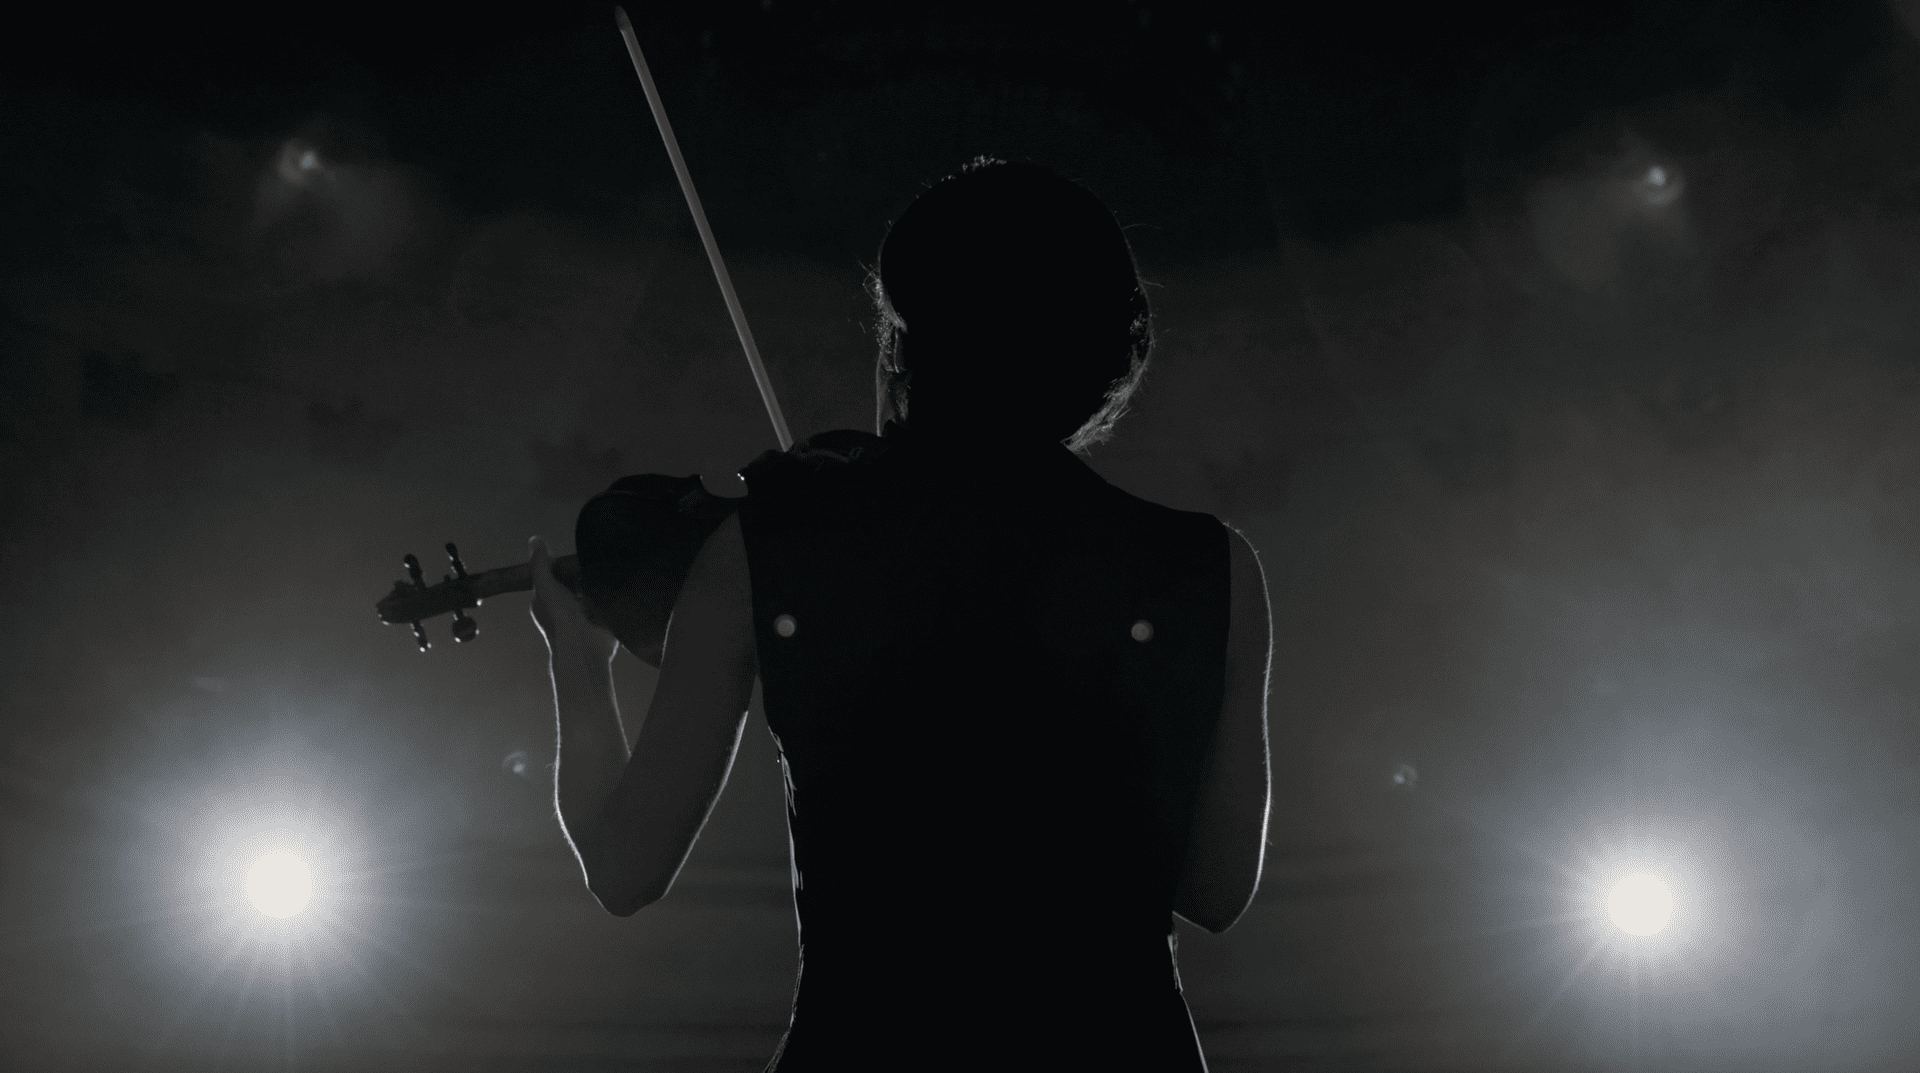 Violinist Performing on Stage with dramatic lighting